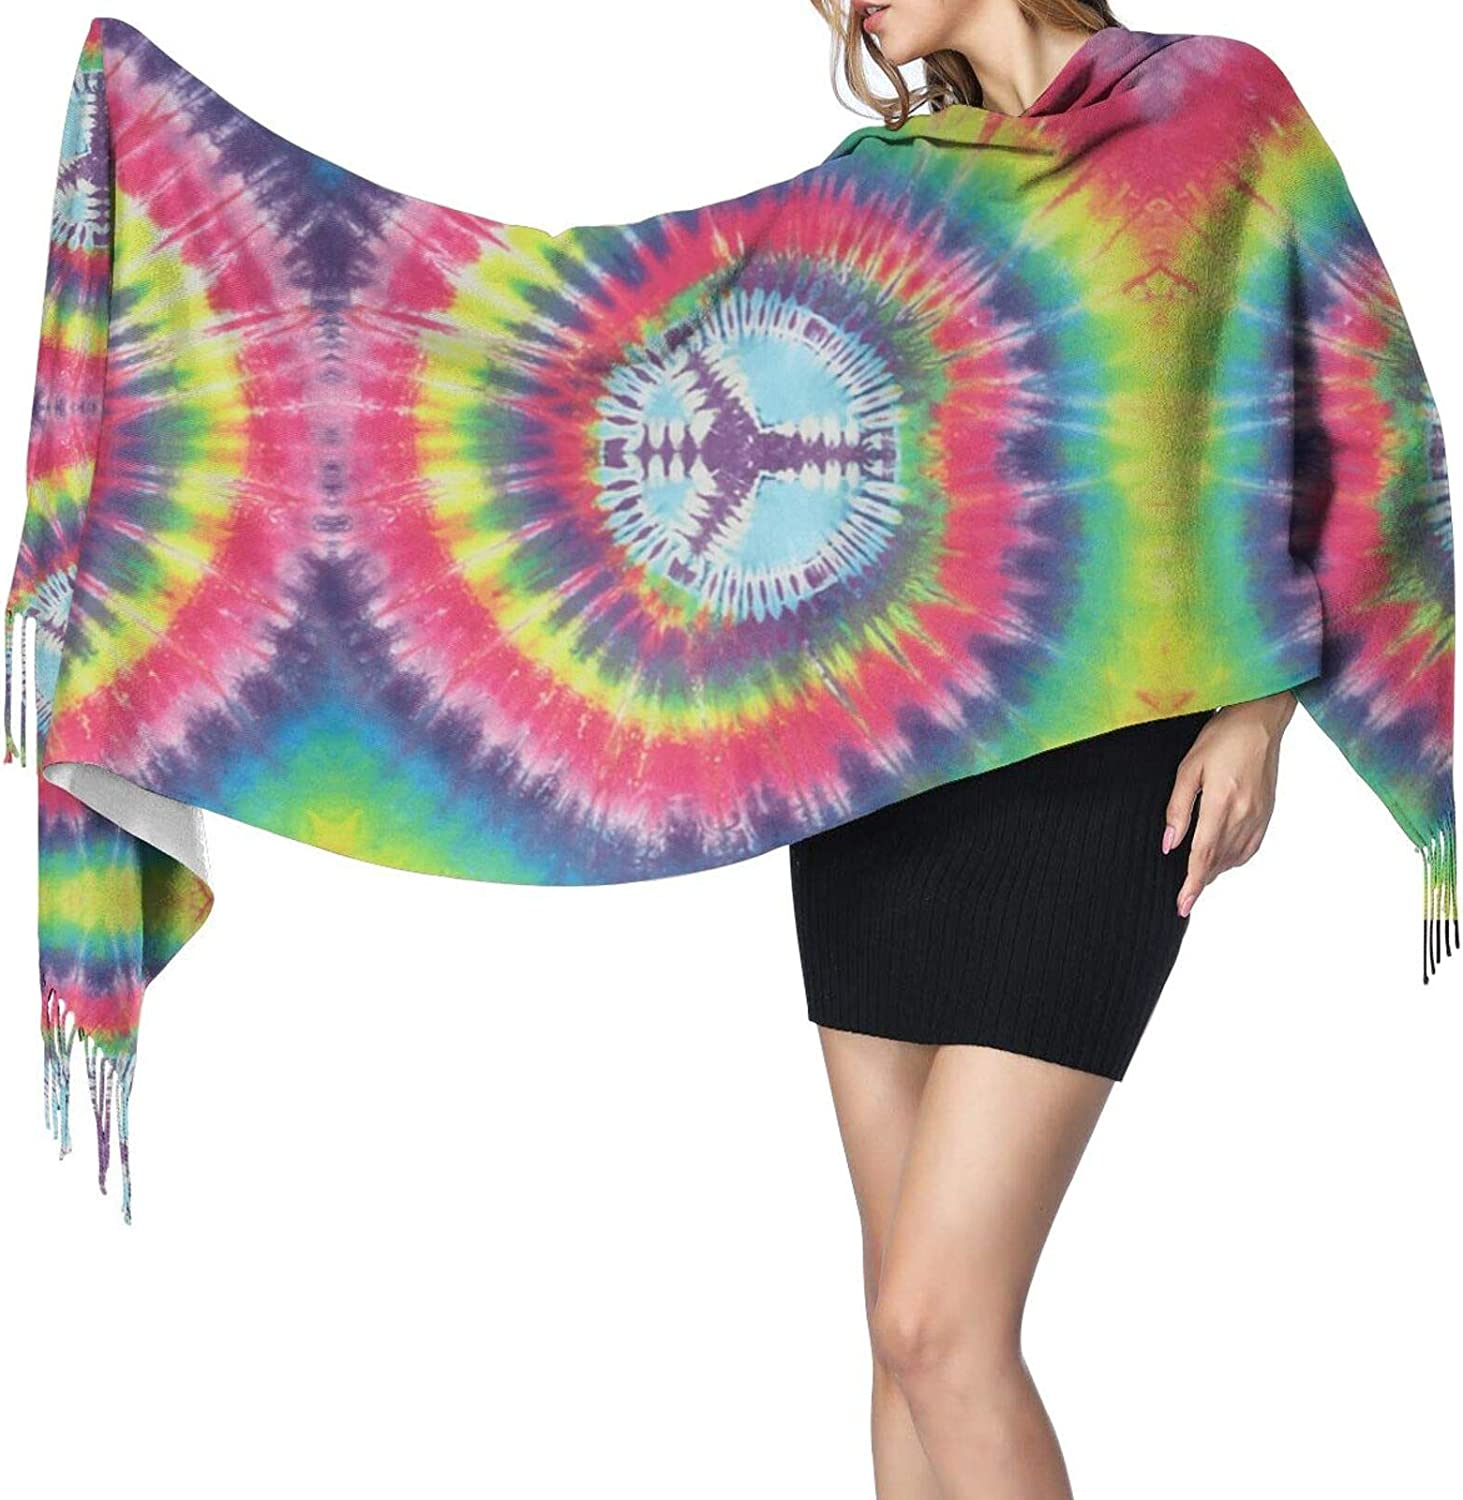 Rainbow Peace Sign Cashmere Feel Scarf Lightweight Soft Scarfs For Boys Girls Creative Warm Cold Weather Blanket Scarf